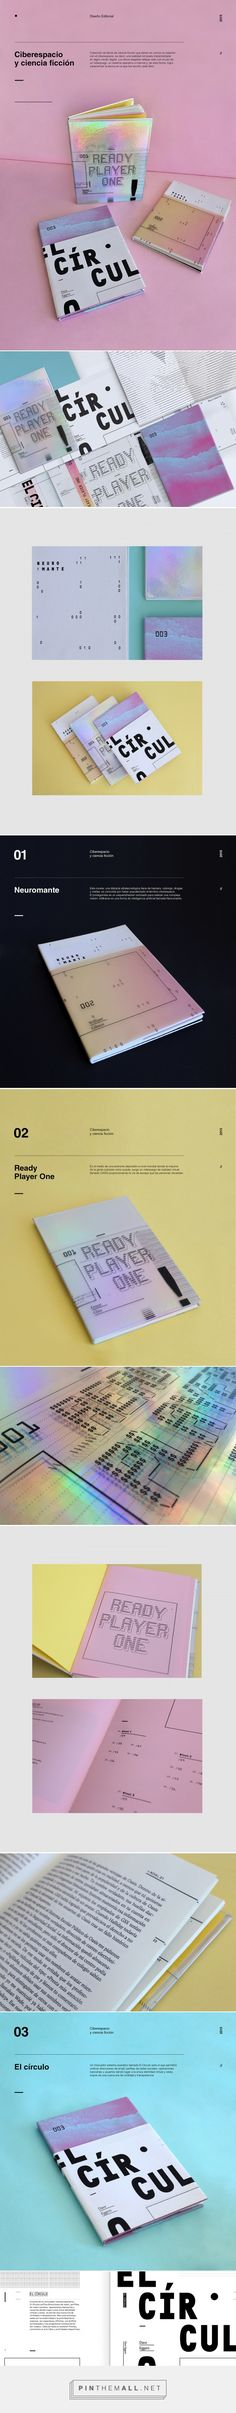 Creative Branding and Zine image ideas & inspiration on Designspiration Layout Design, Graphisches Design, Buch Design, Graphic Design Layouts, Print Layout, Brochure Design, Graphic Design Inspiration, Logo Design, Text Design